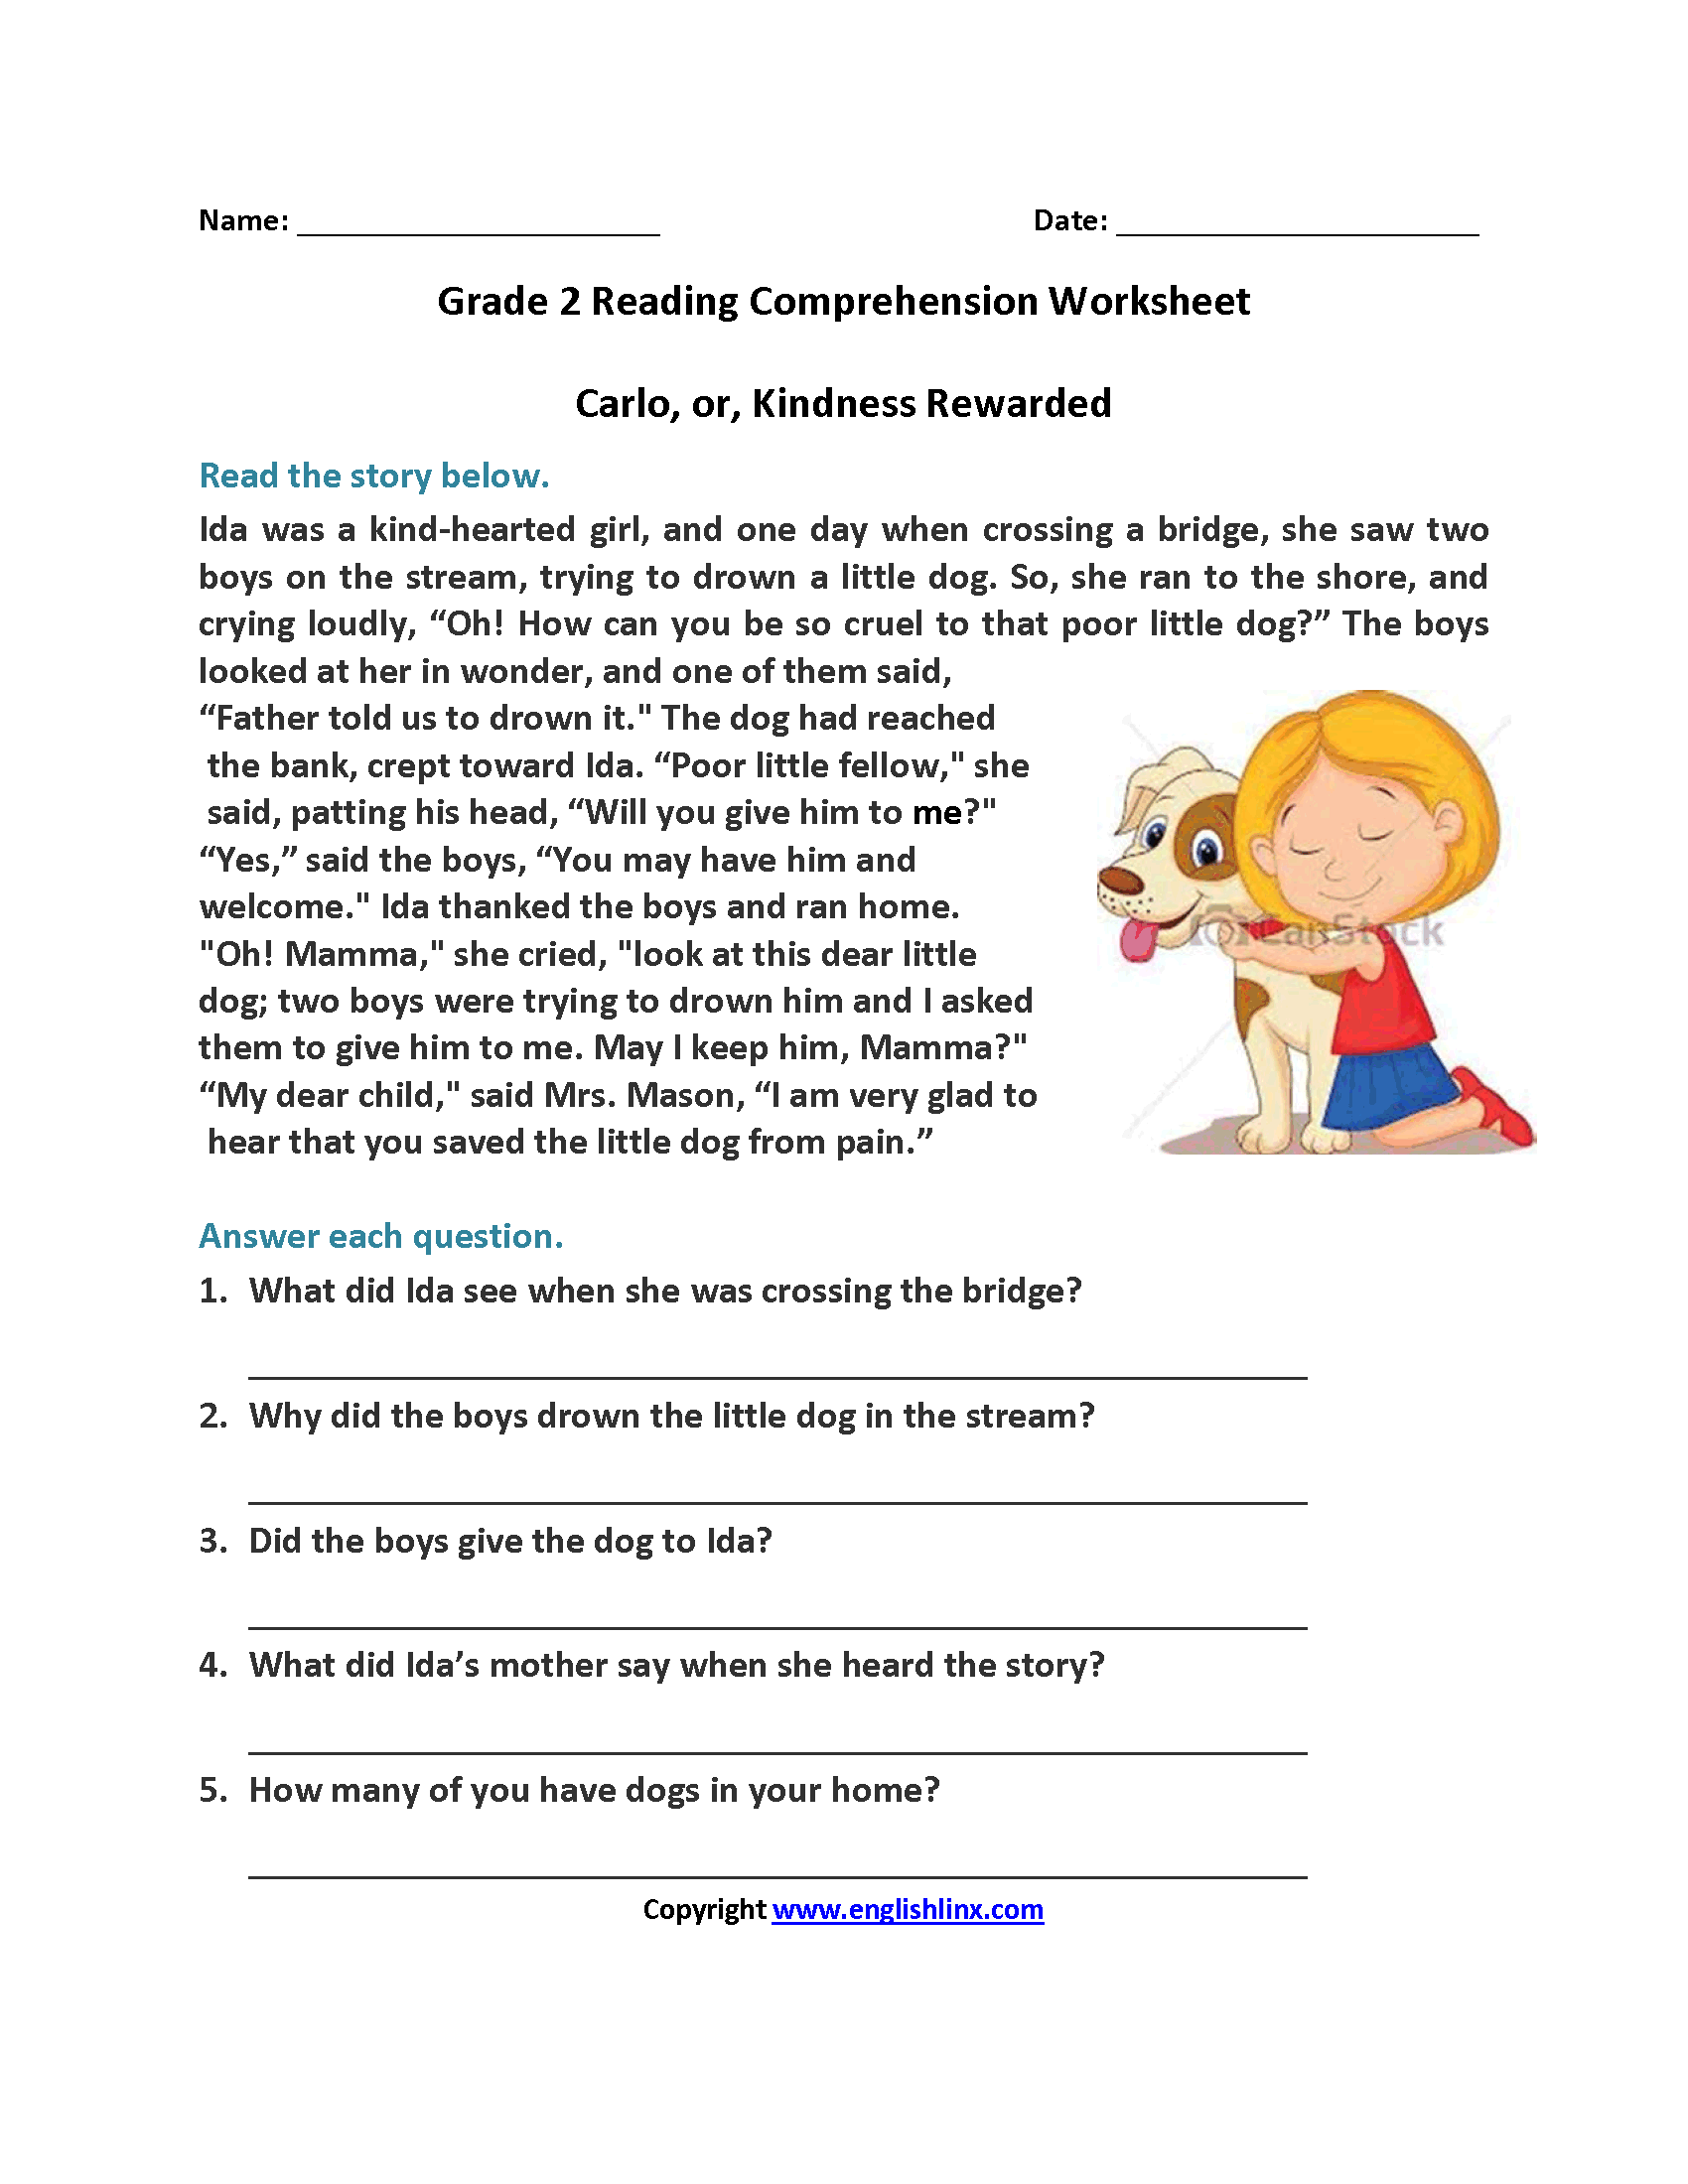 Worksheets Easy Reading Comprehension Worksheets carlo or kindness rewarded second grade reading worksheets worksheets